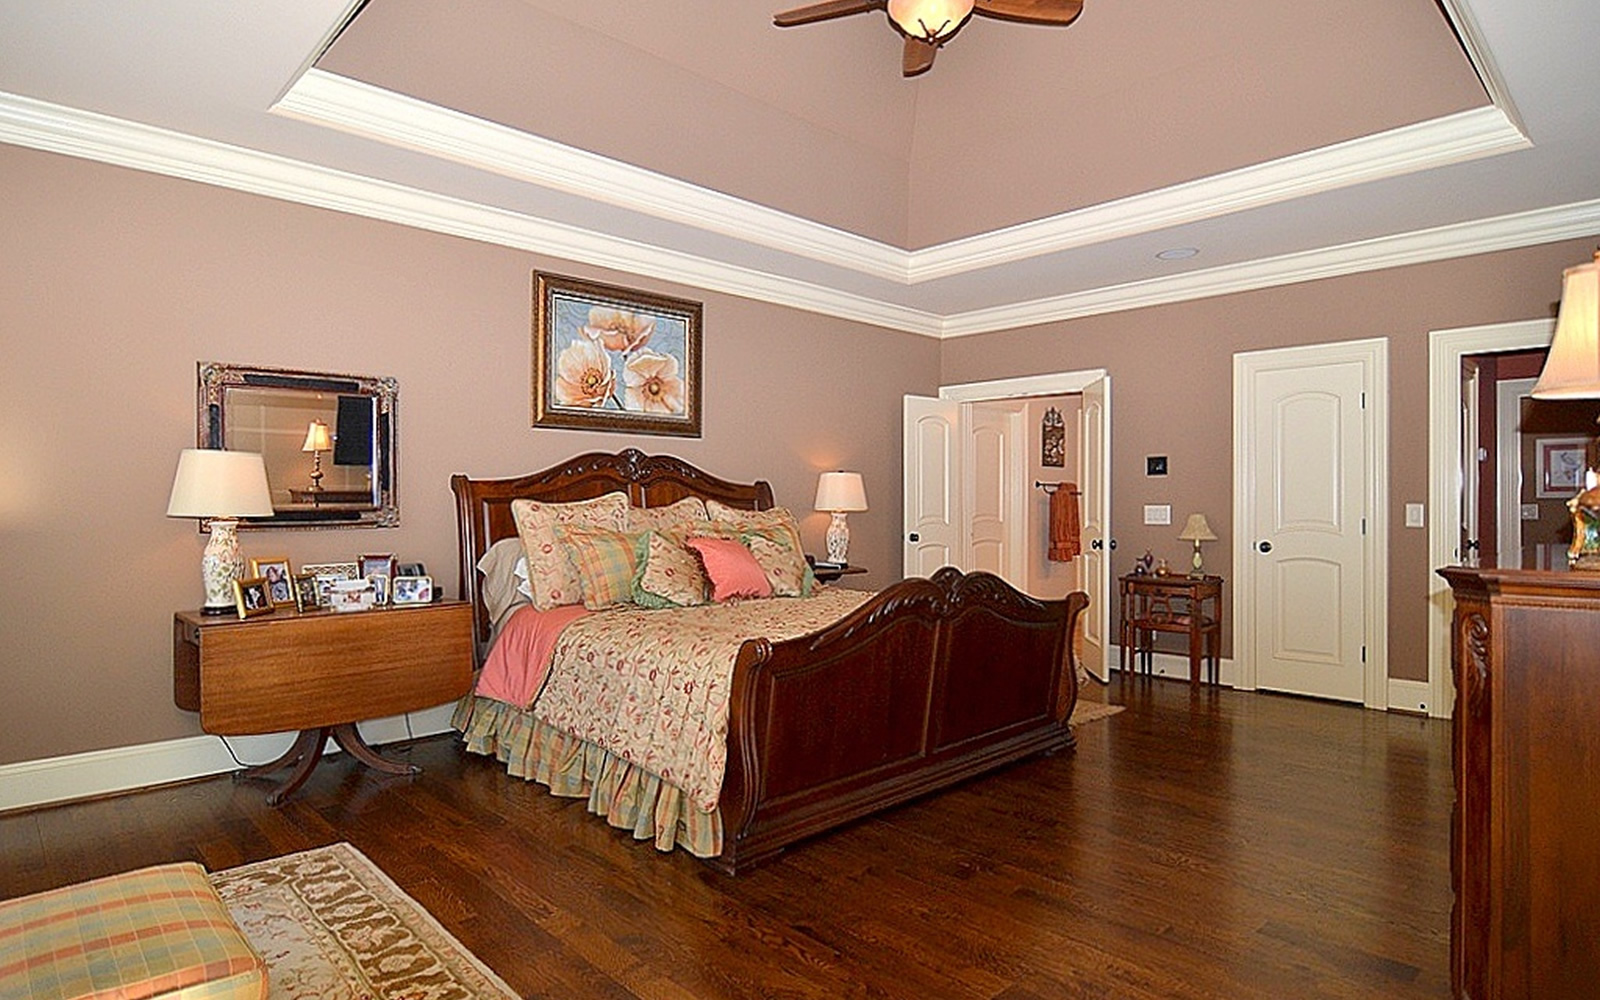 1311 Dunleigh Drive Bedroom